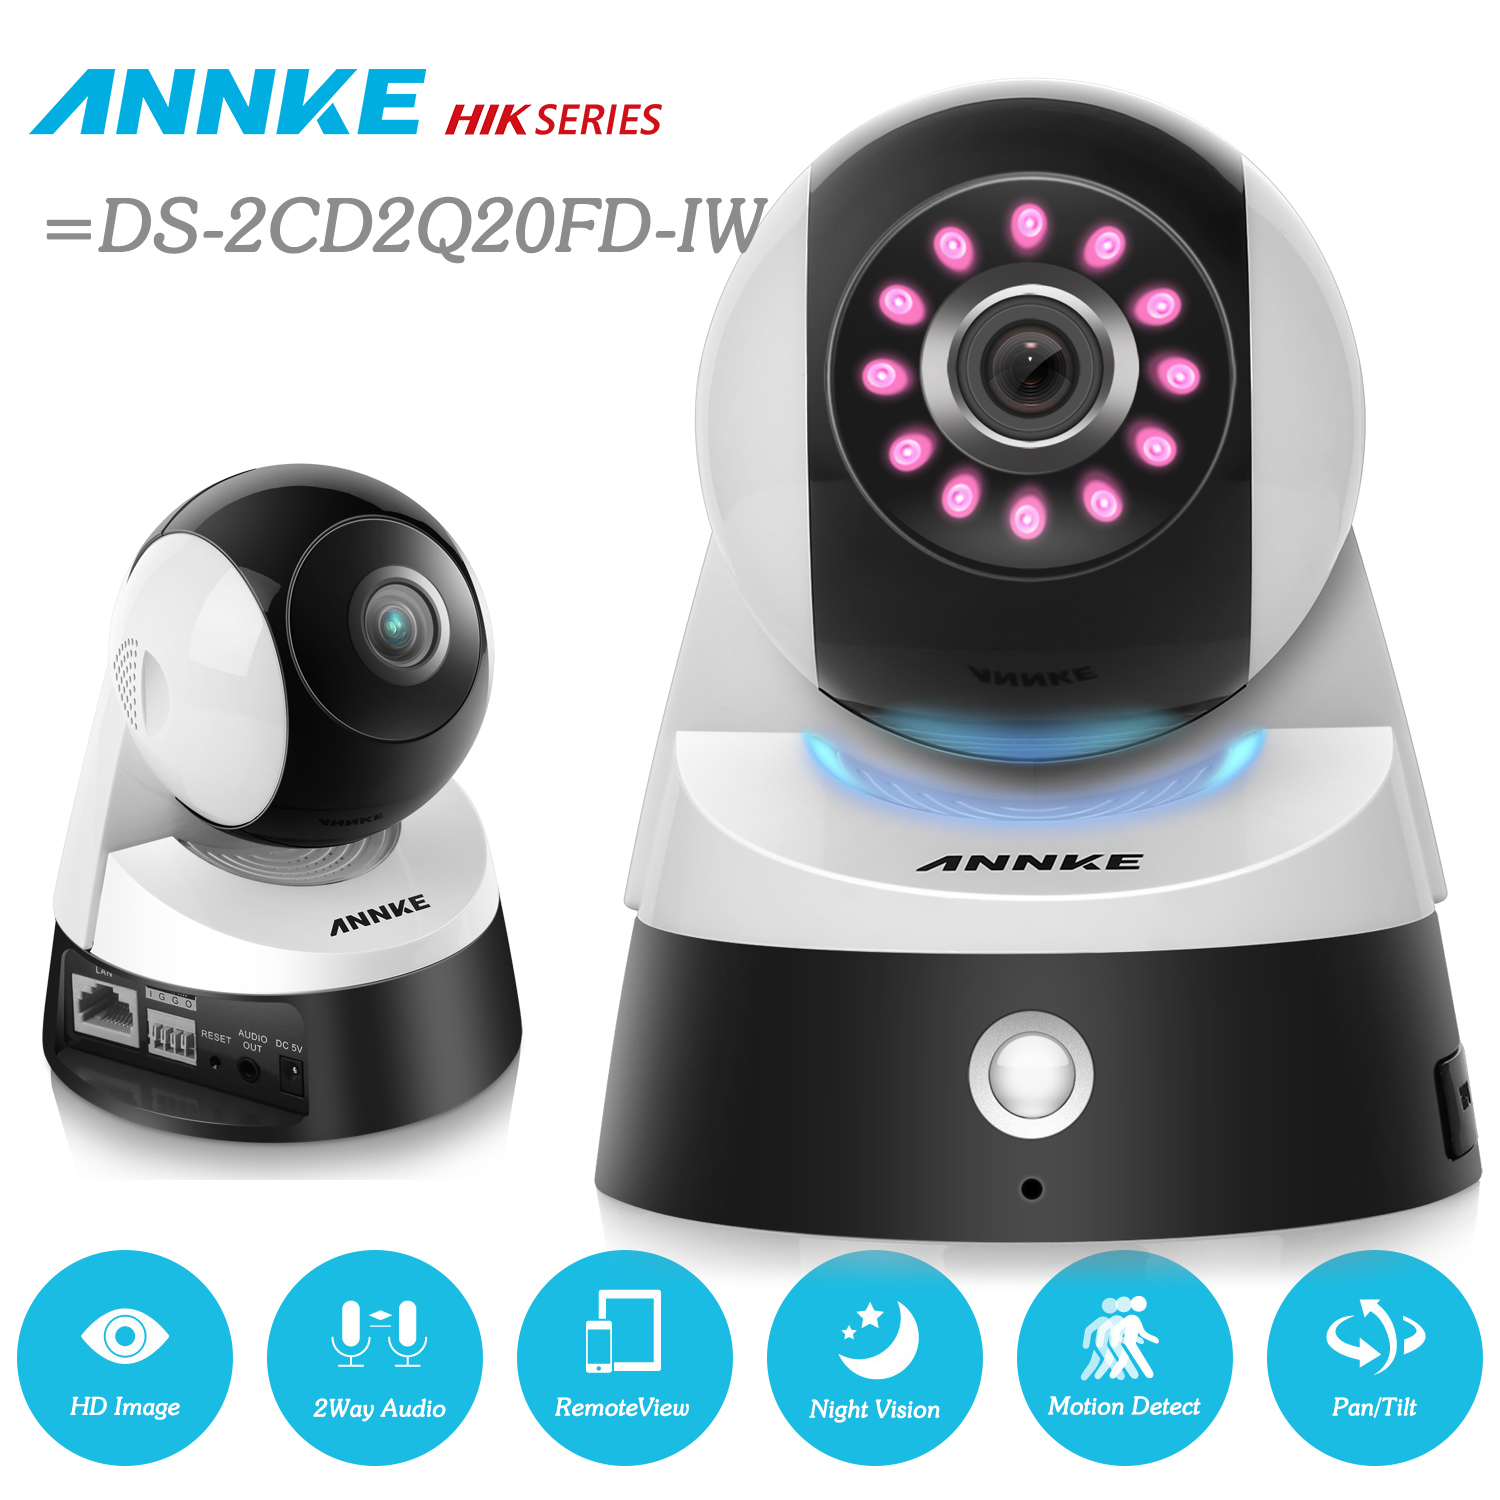 ANNKE HD 1080p Wireless Wi-Fi Camera With 2-Way Audio, 2.0MP Sensor, And Infrared Motion Detection =SKI DS-2CD2Q20FD-IW touchstone teacher s edition 4 with audio cd